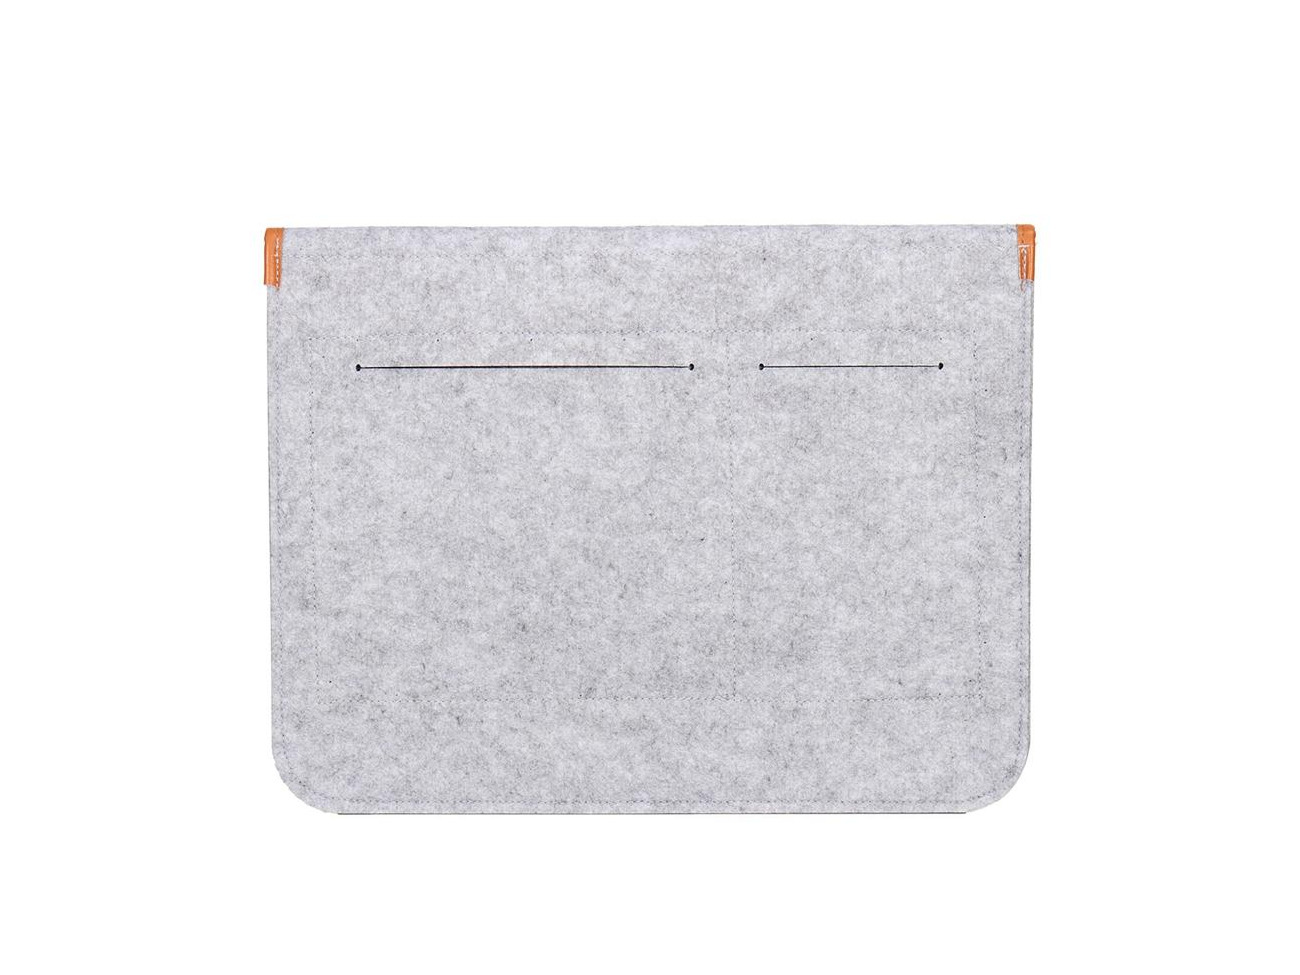 15 Inch Wool Leather laptop Sleeve Bag For Laptop Macbook Pro//Air 15/""